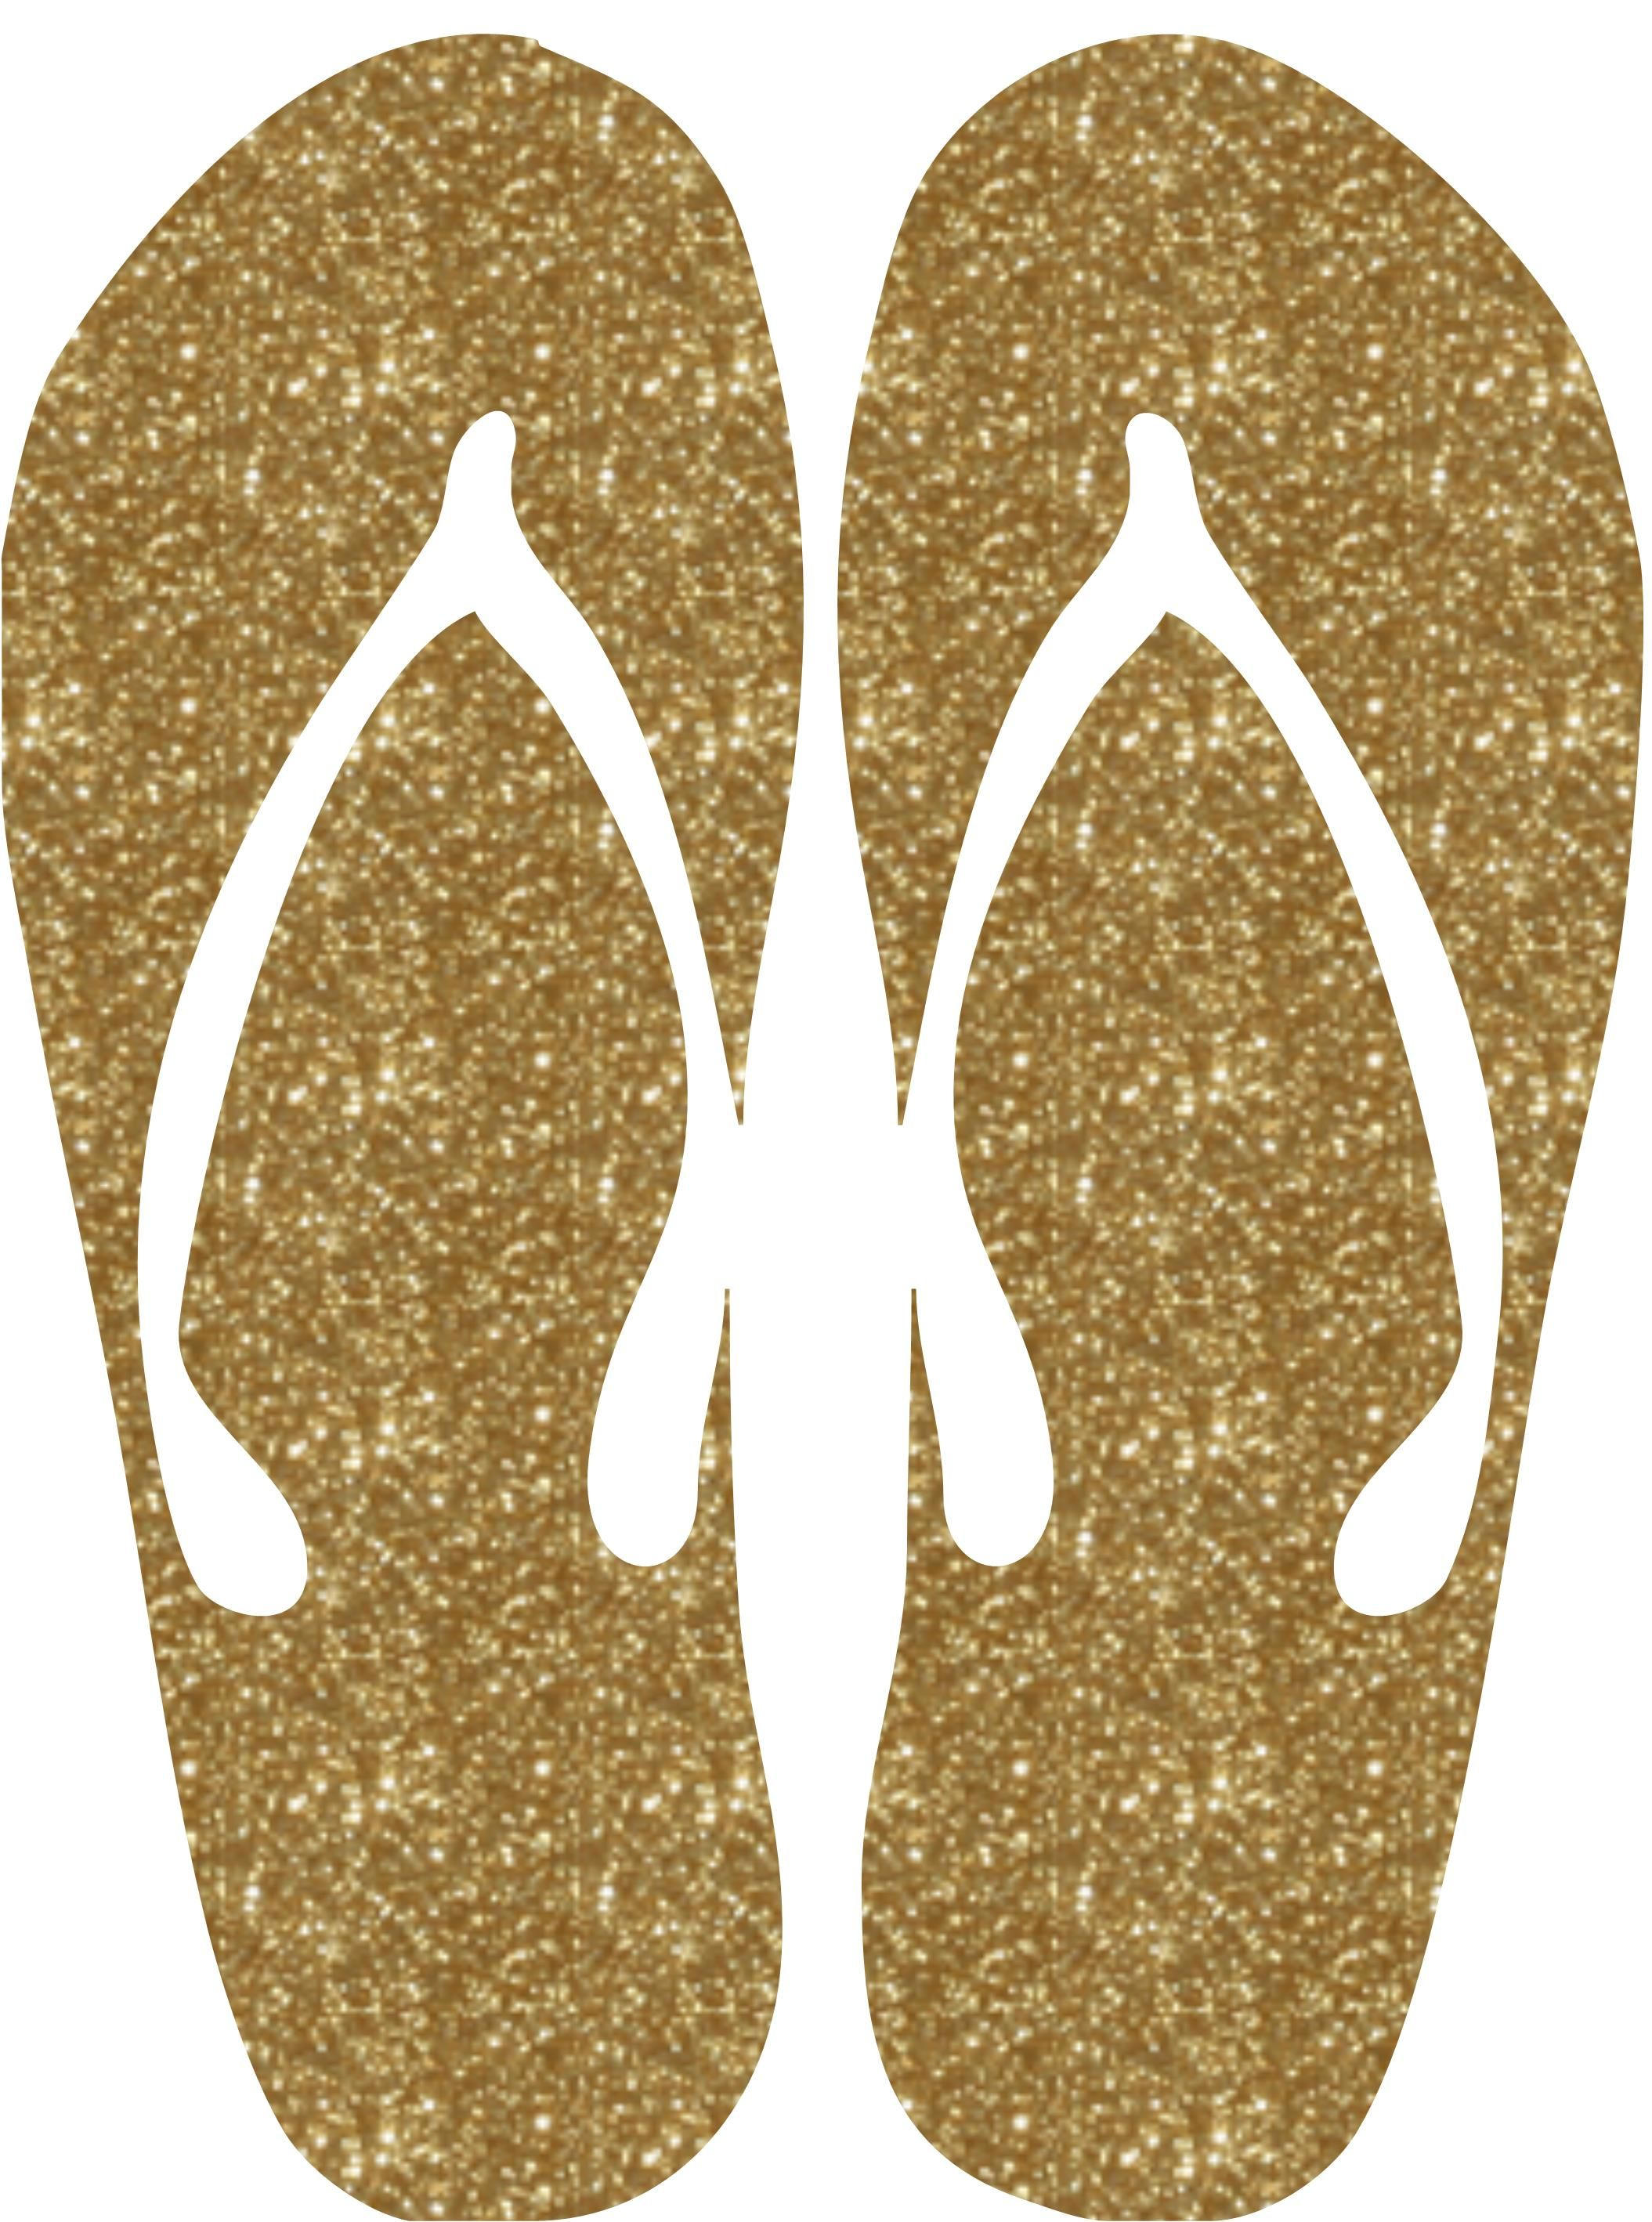 trophies awards themed holiday trophies awards collections rh premiercrowns com flip flop clipart png flip flop clipart images